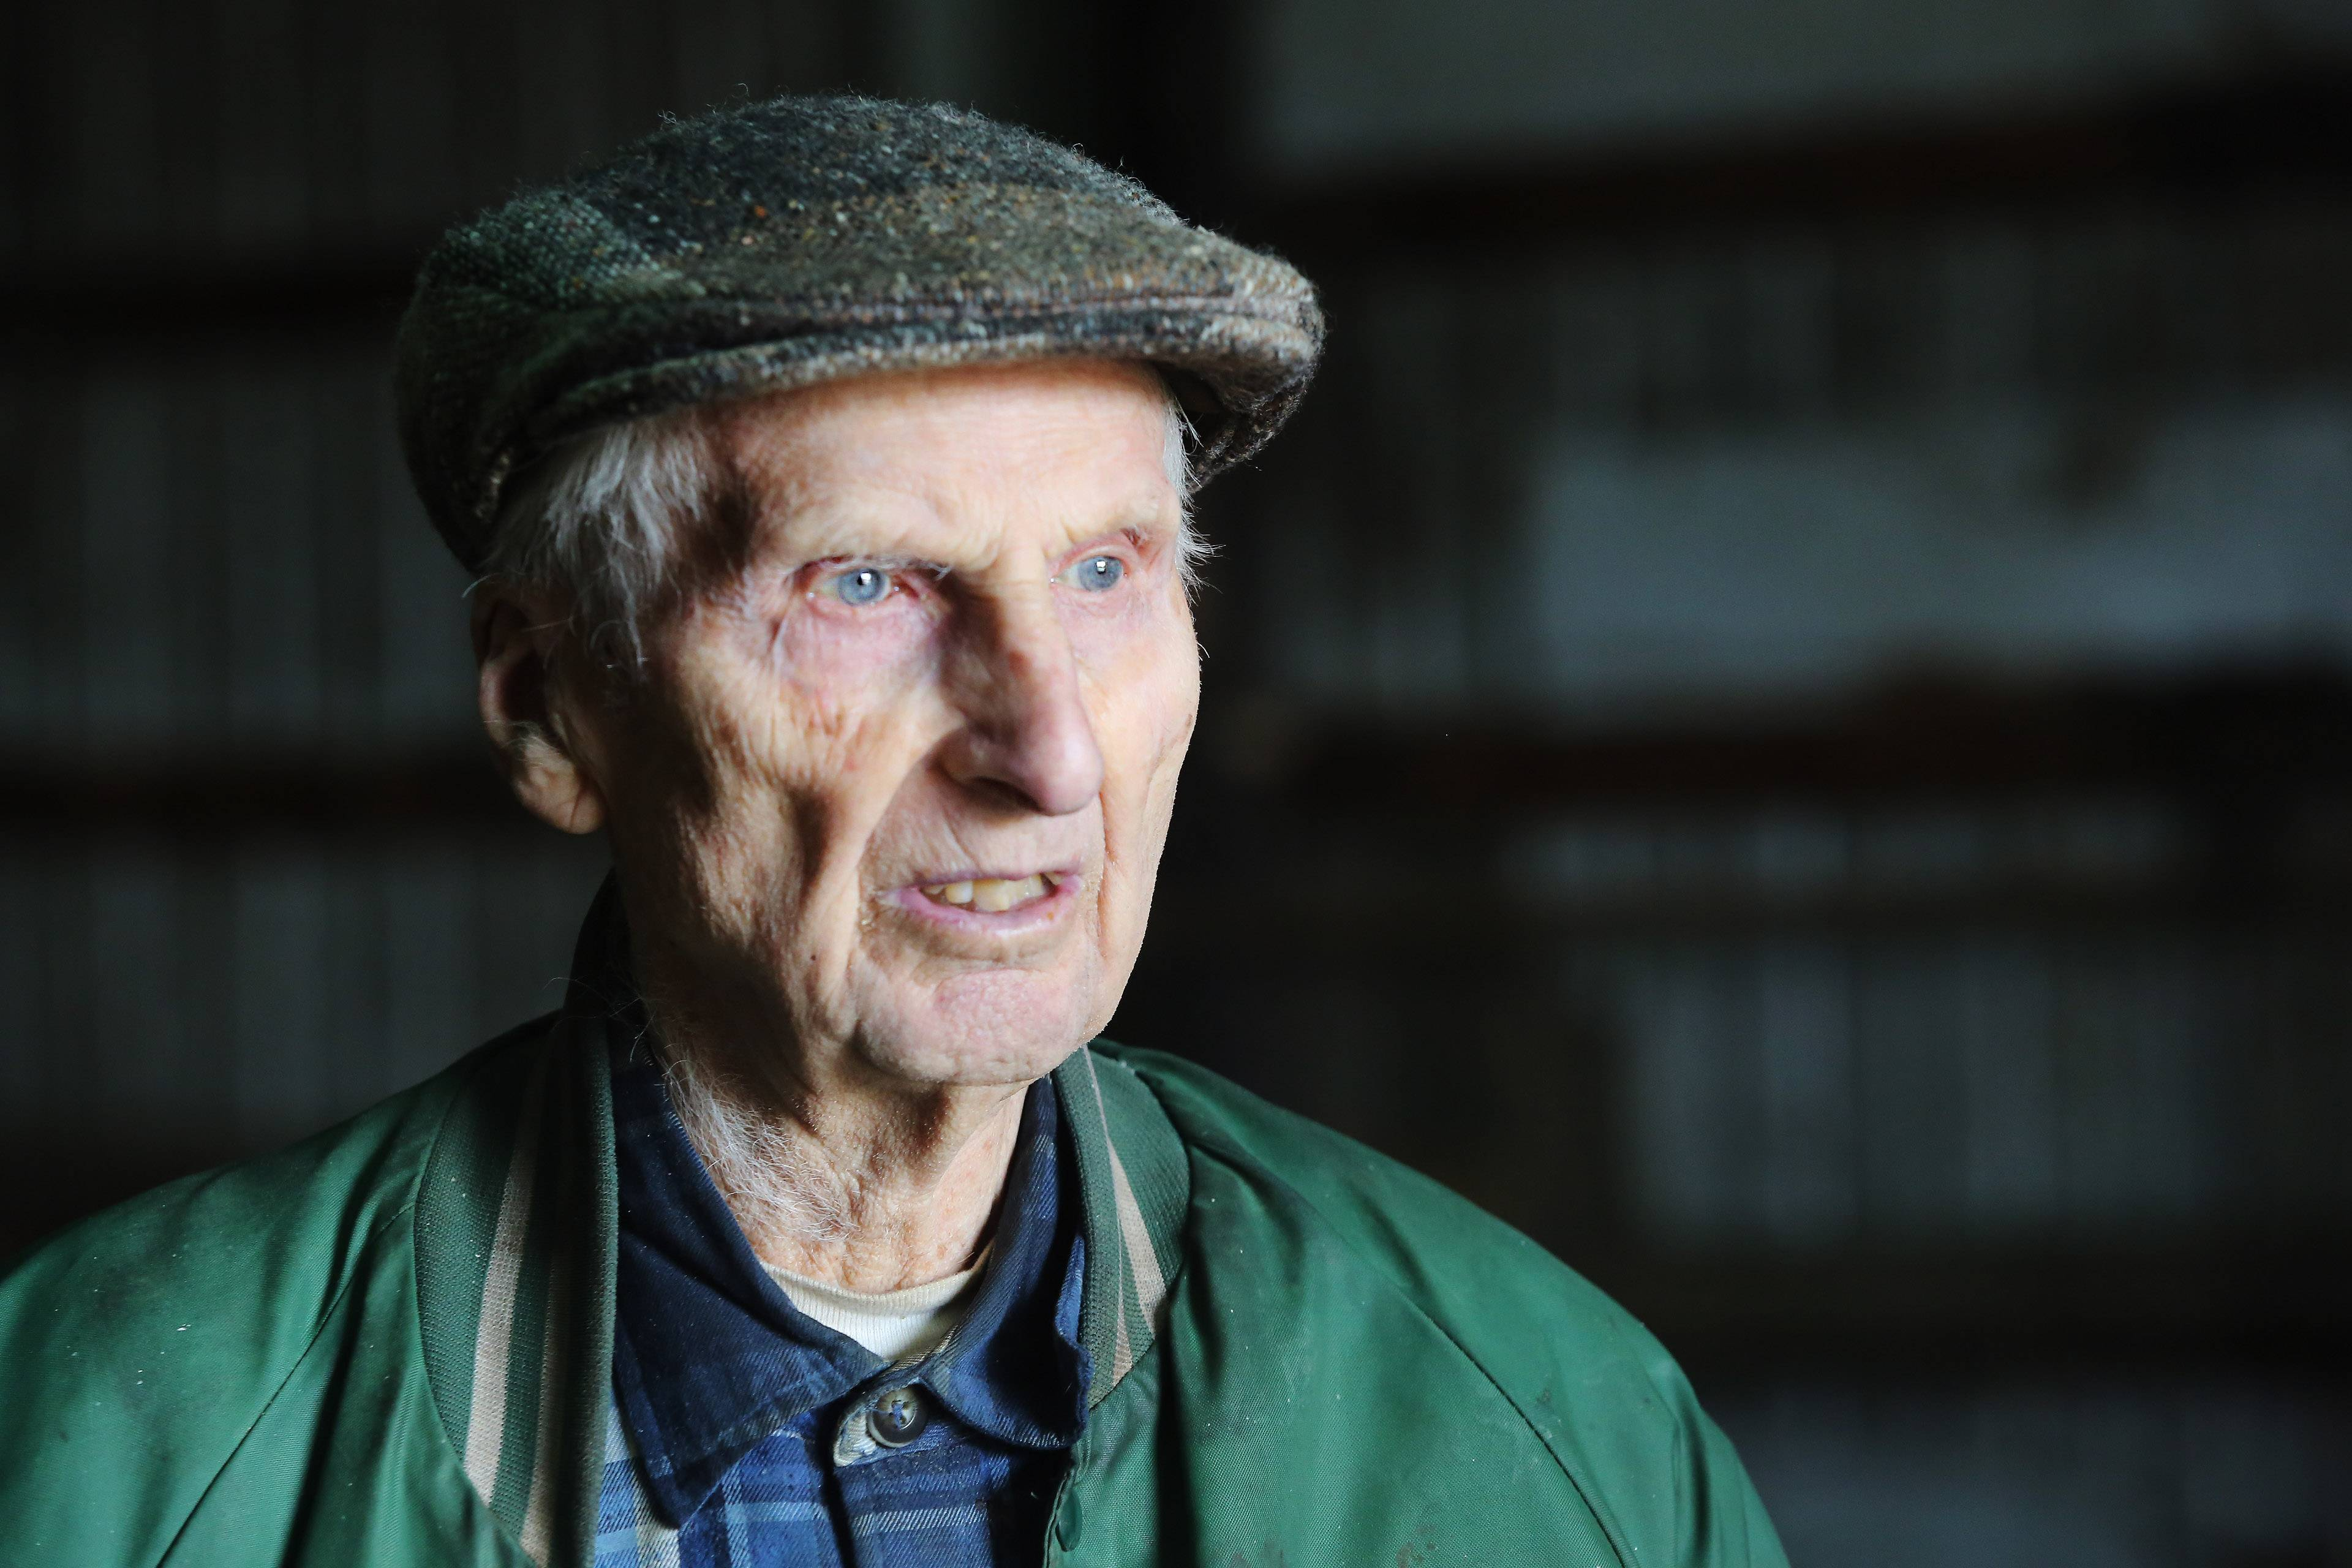 Harold Bergman, 99, says he's adjusting to the idea of retiring from farming as he prepares for the sale of his equipment and personal items, making way for the farm to become a Hoffman Estates housing development.